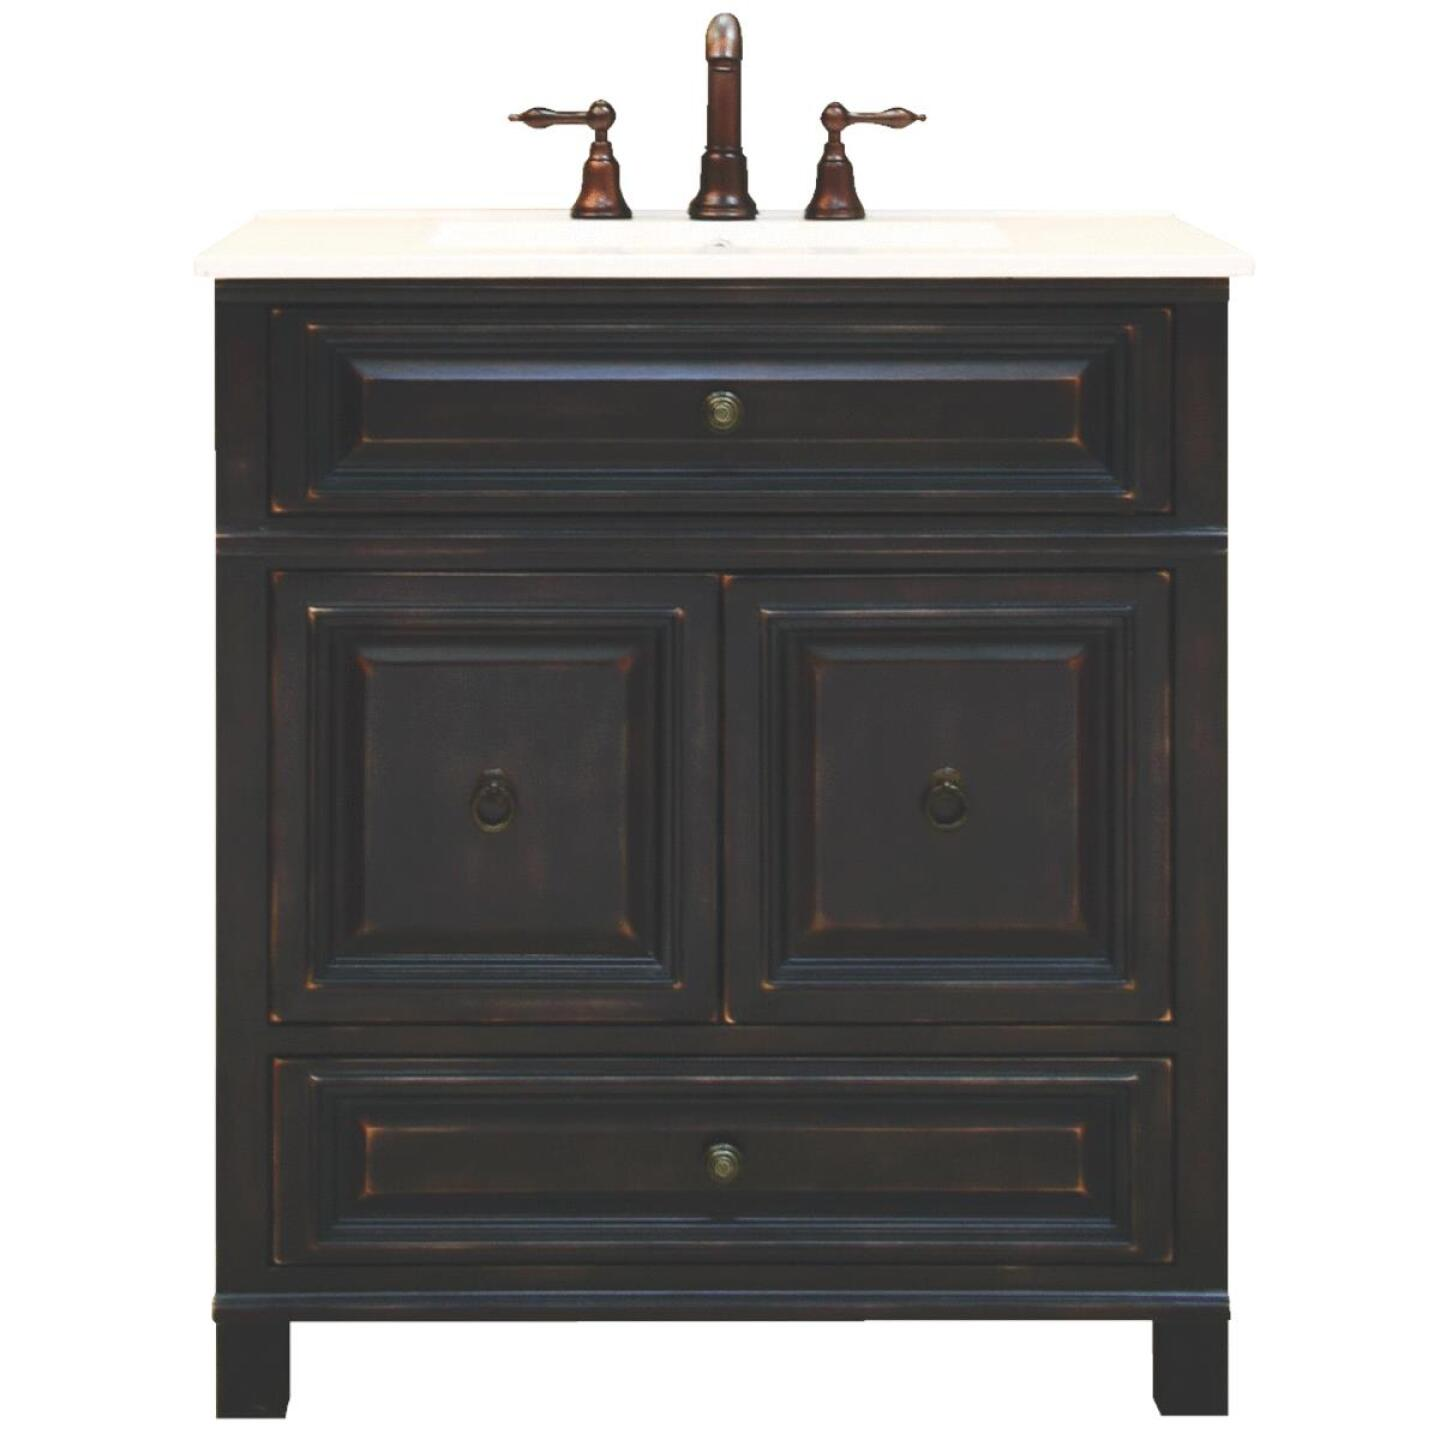 Sunny Wood Barton Hill Black Onyx 30 In. W x 34 In. H x 21 In. D Vanity Base, 2 Door/1 Drawer Image 198